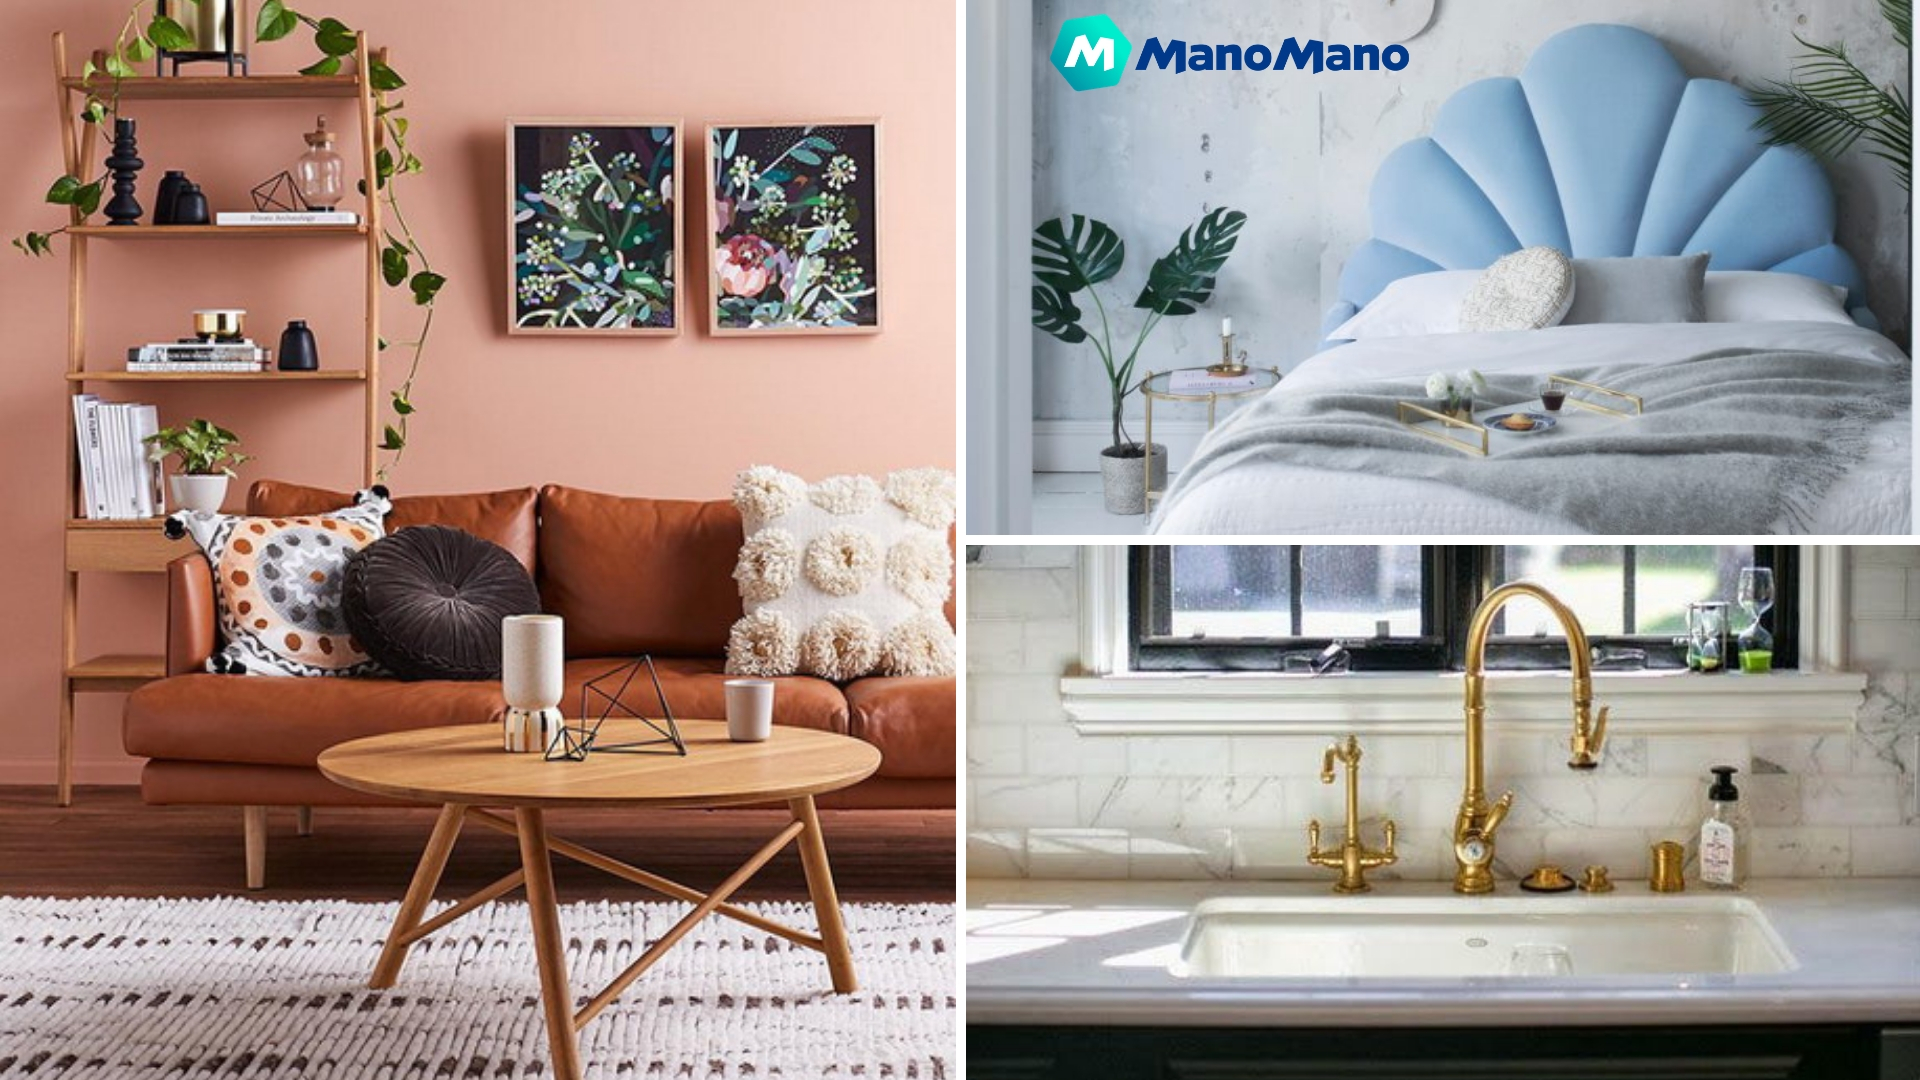 Top 10 interior design trends 2019 the handy mano - Interior design trends 2019 ...